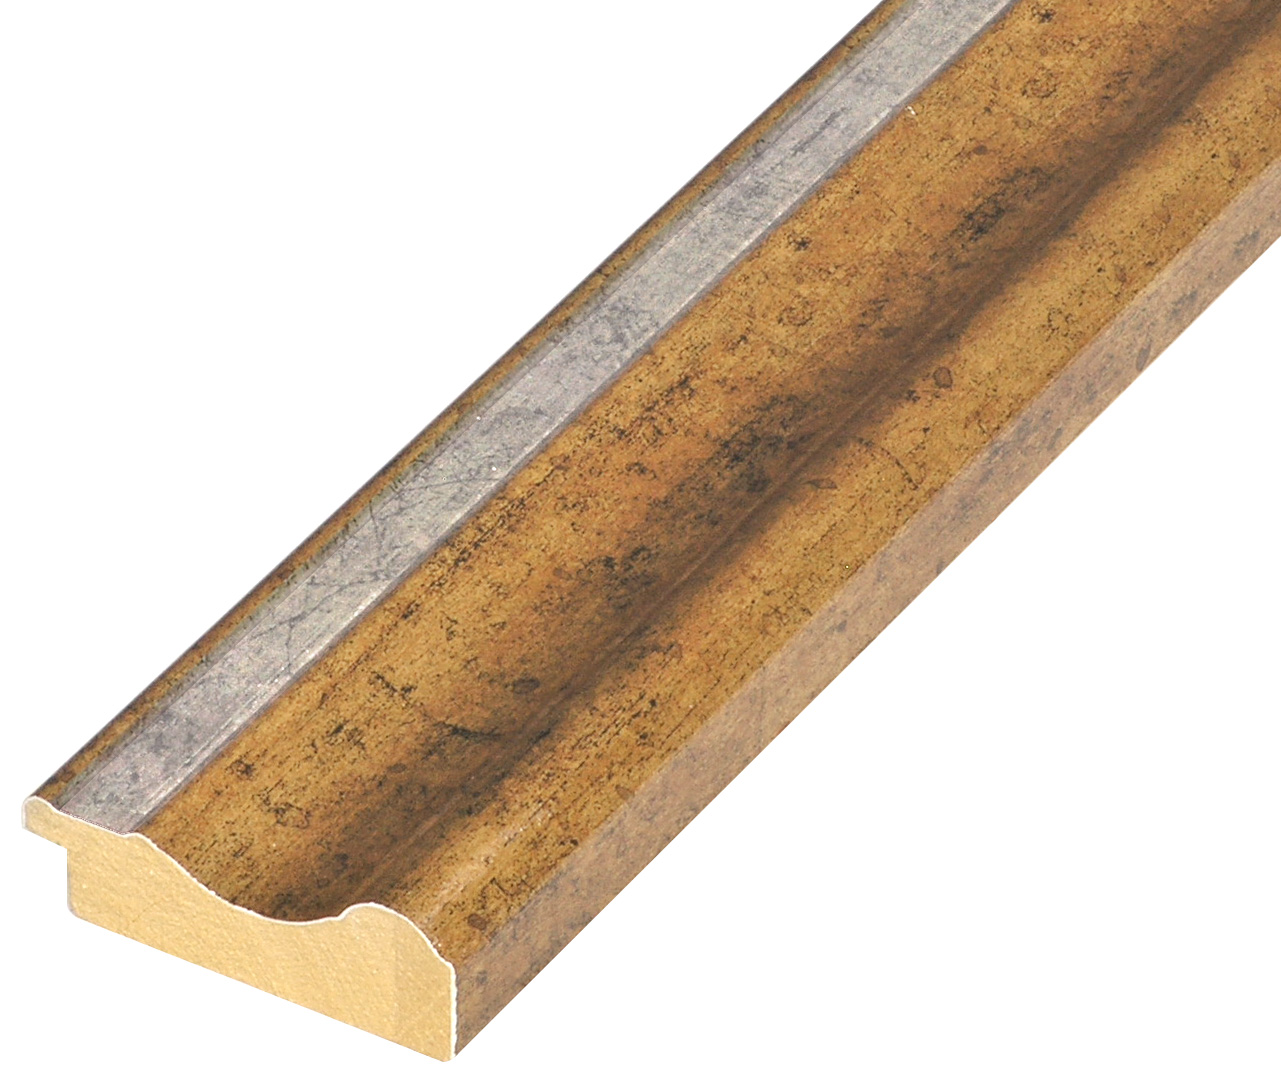 Moulding ayous - width 61mm height 20 - Gold, silver edge